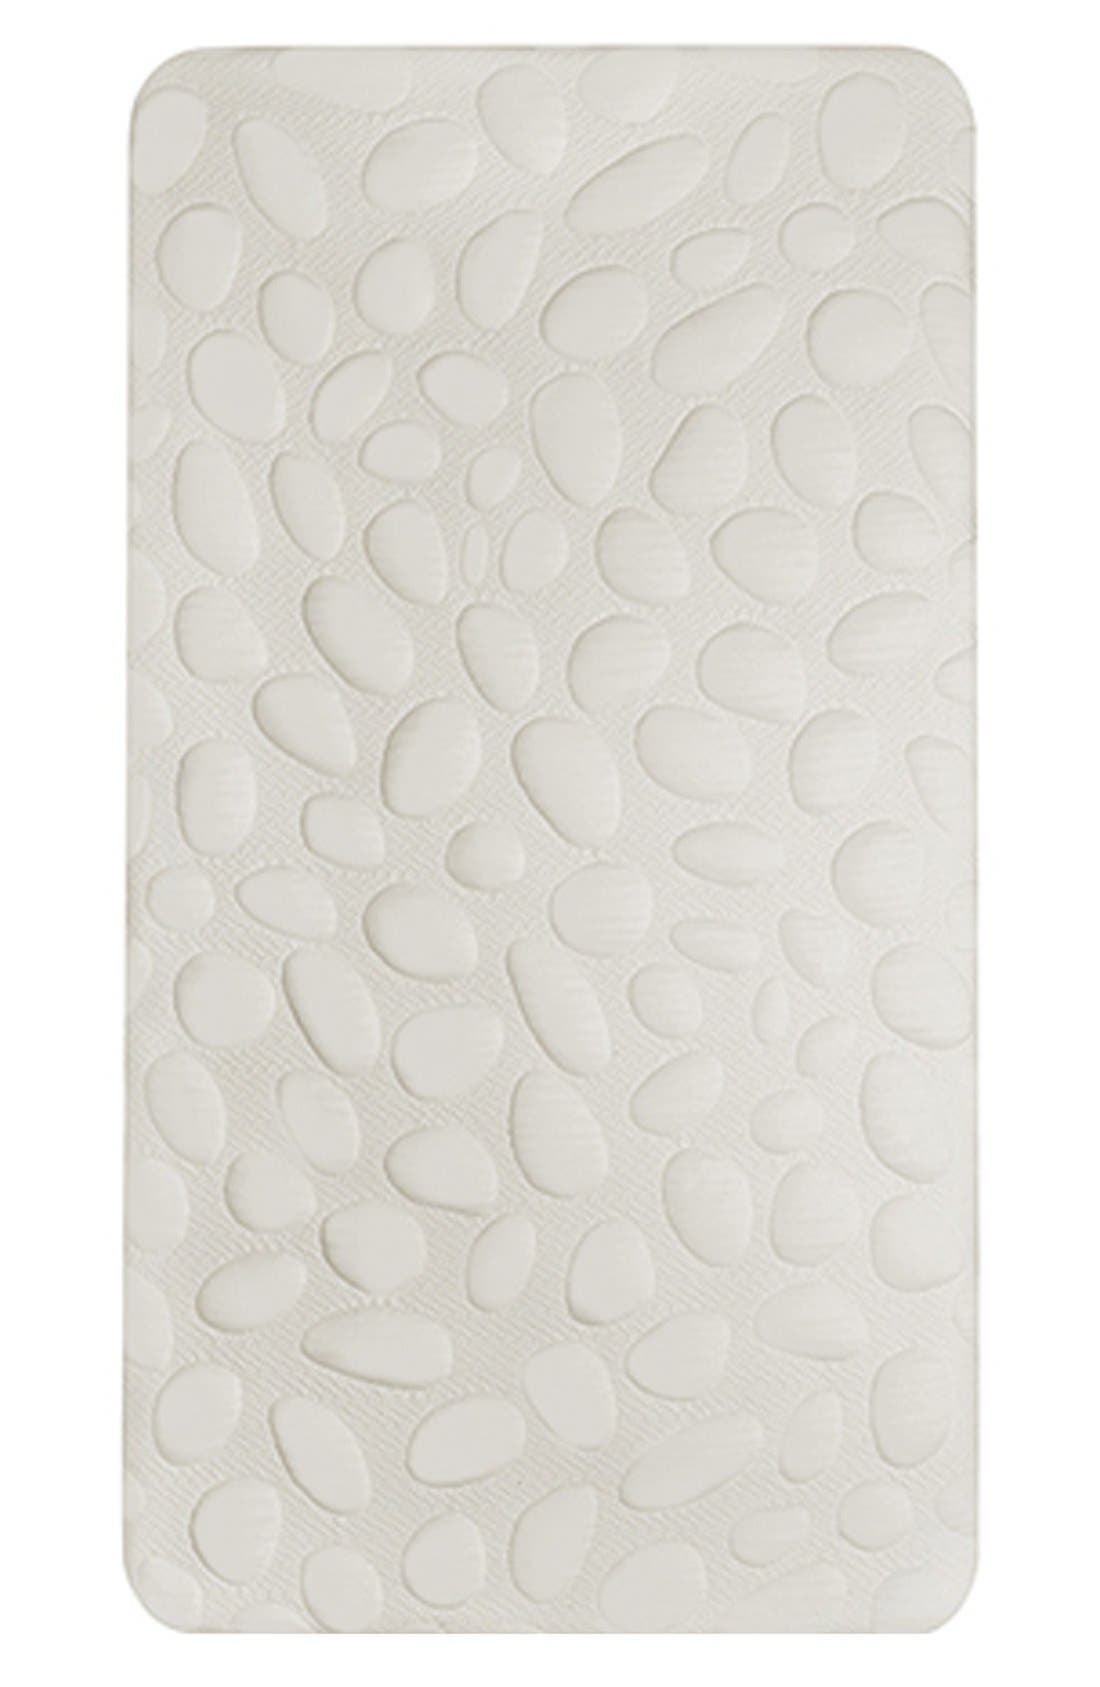 'Pebble Air' Crib Mattress,                         Main,                         color, CLOUD